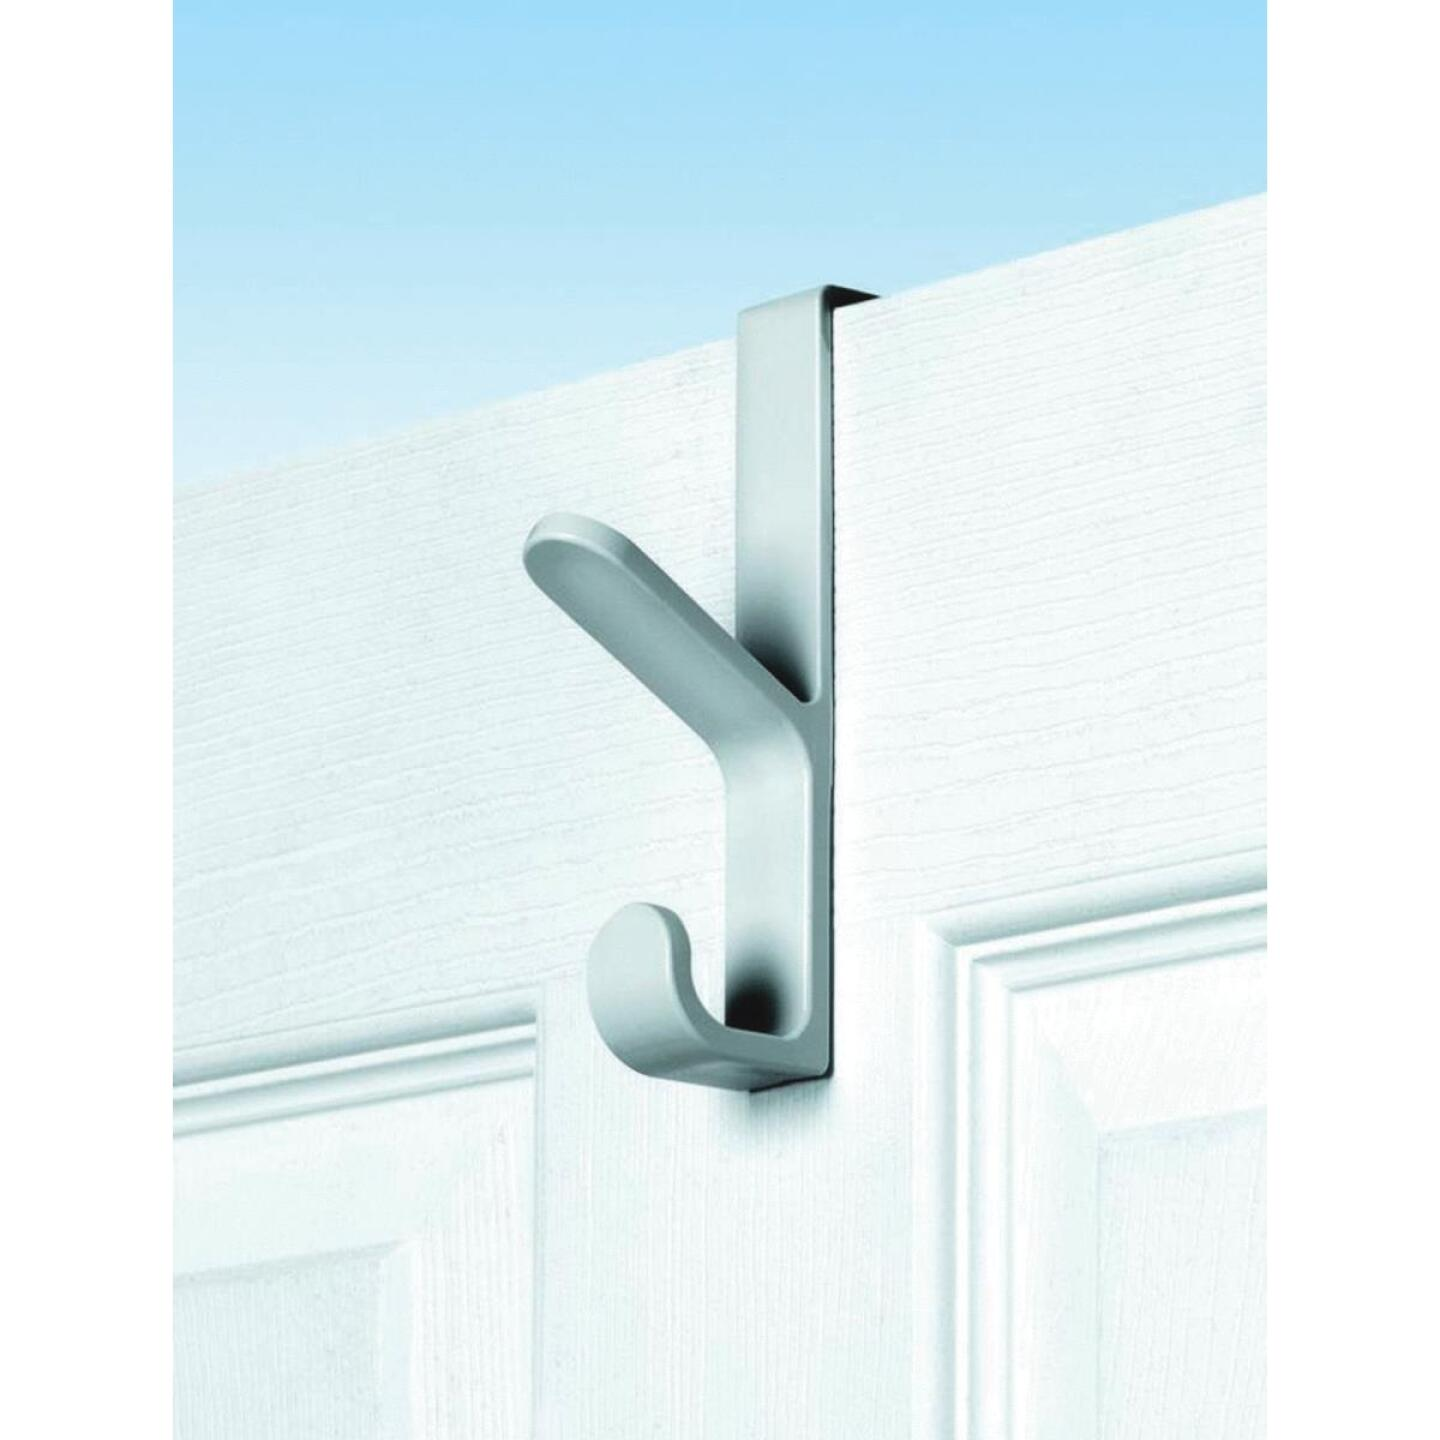 Spectrum White Plastic Over-The-Door Hook, 5-1/2 In. Image 1